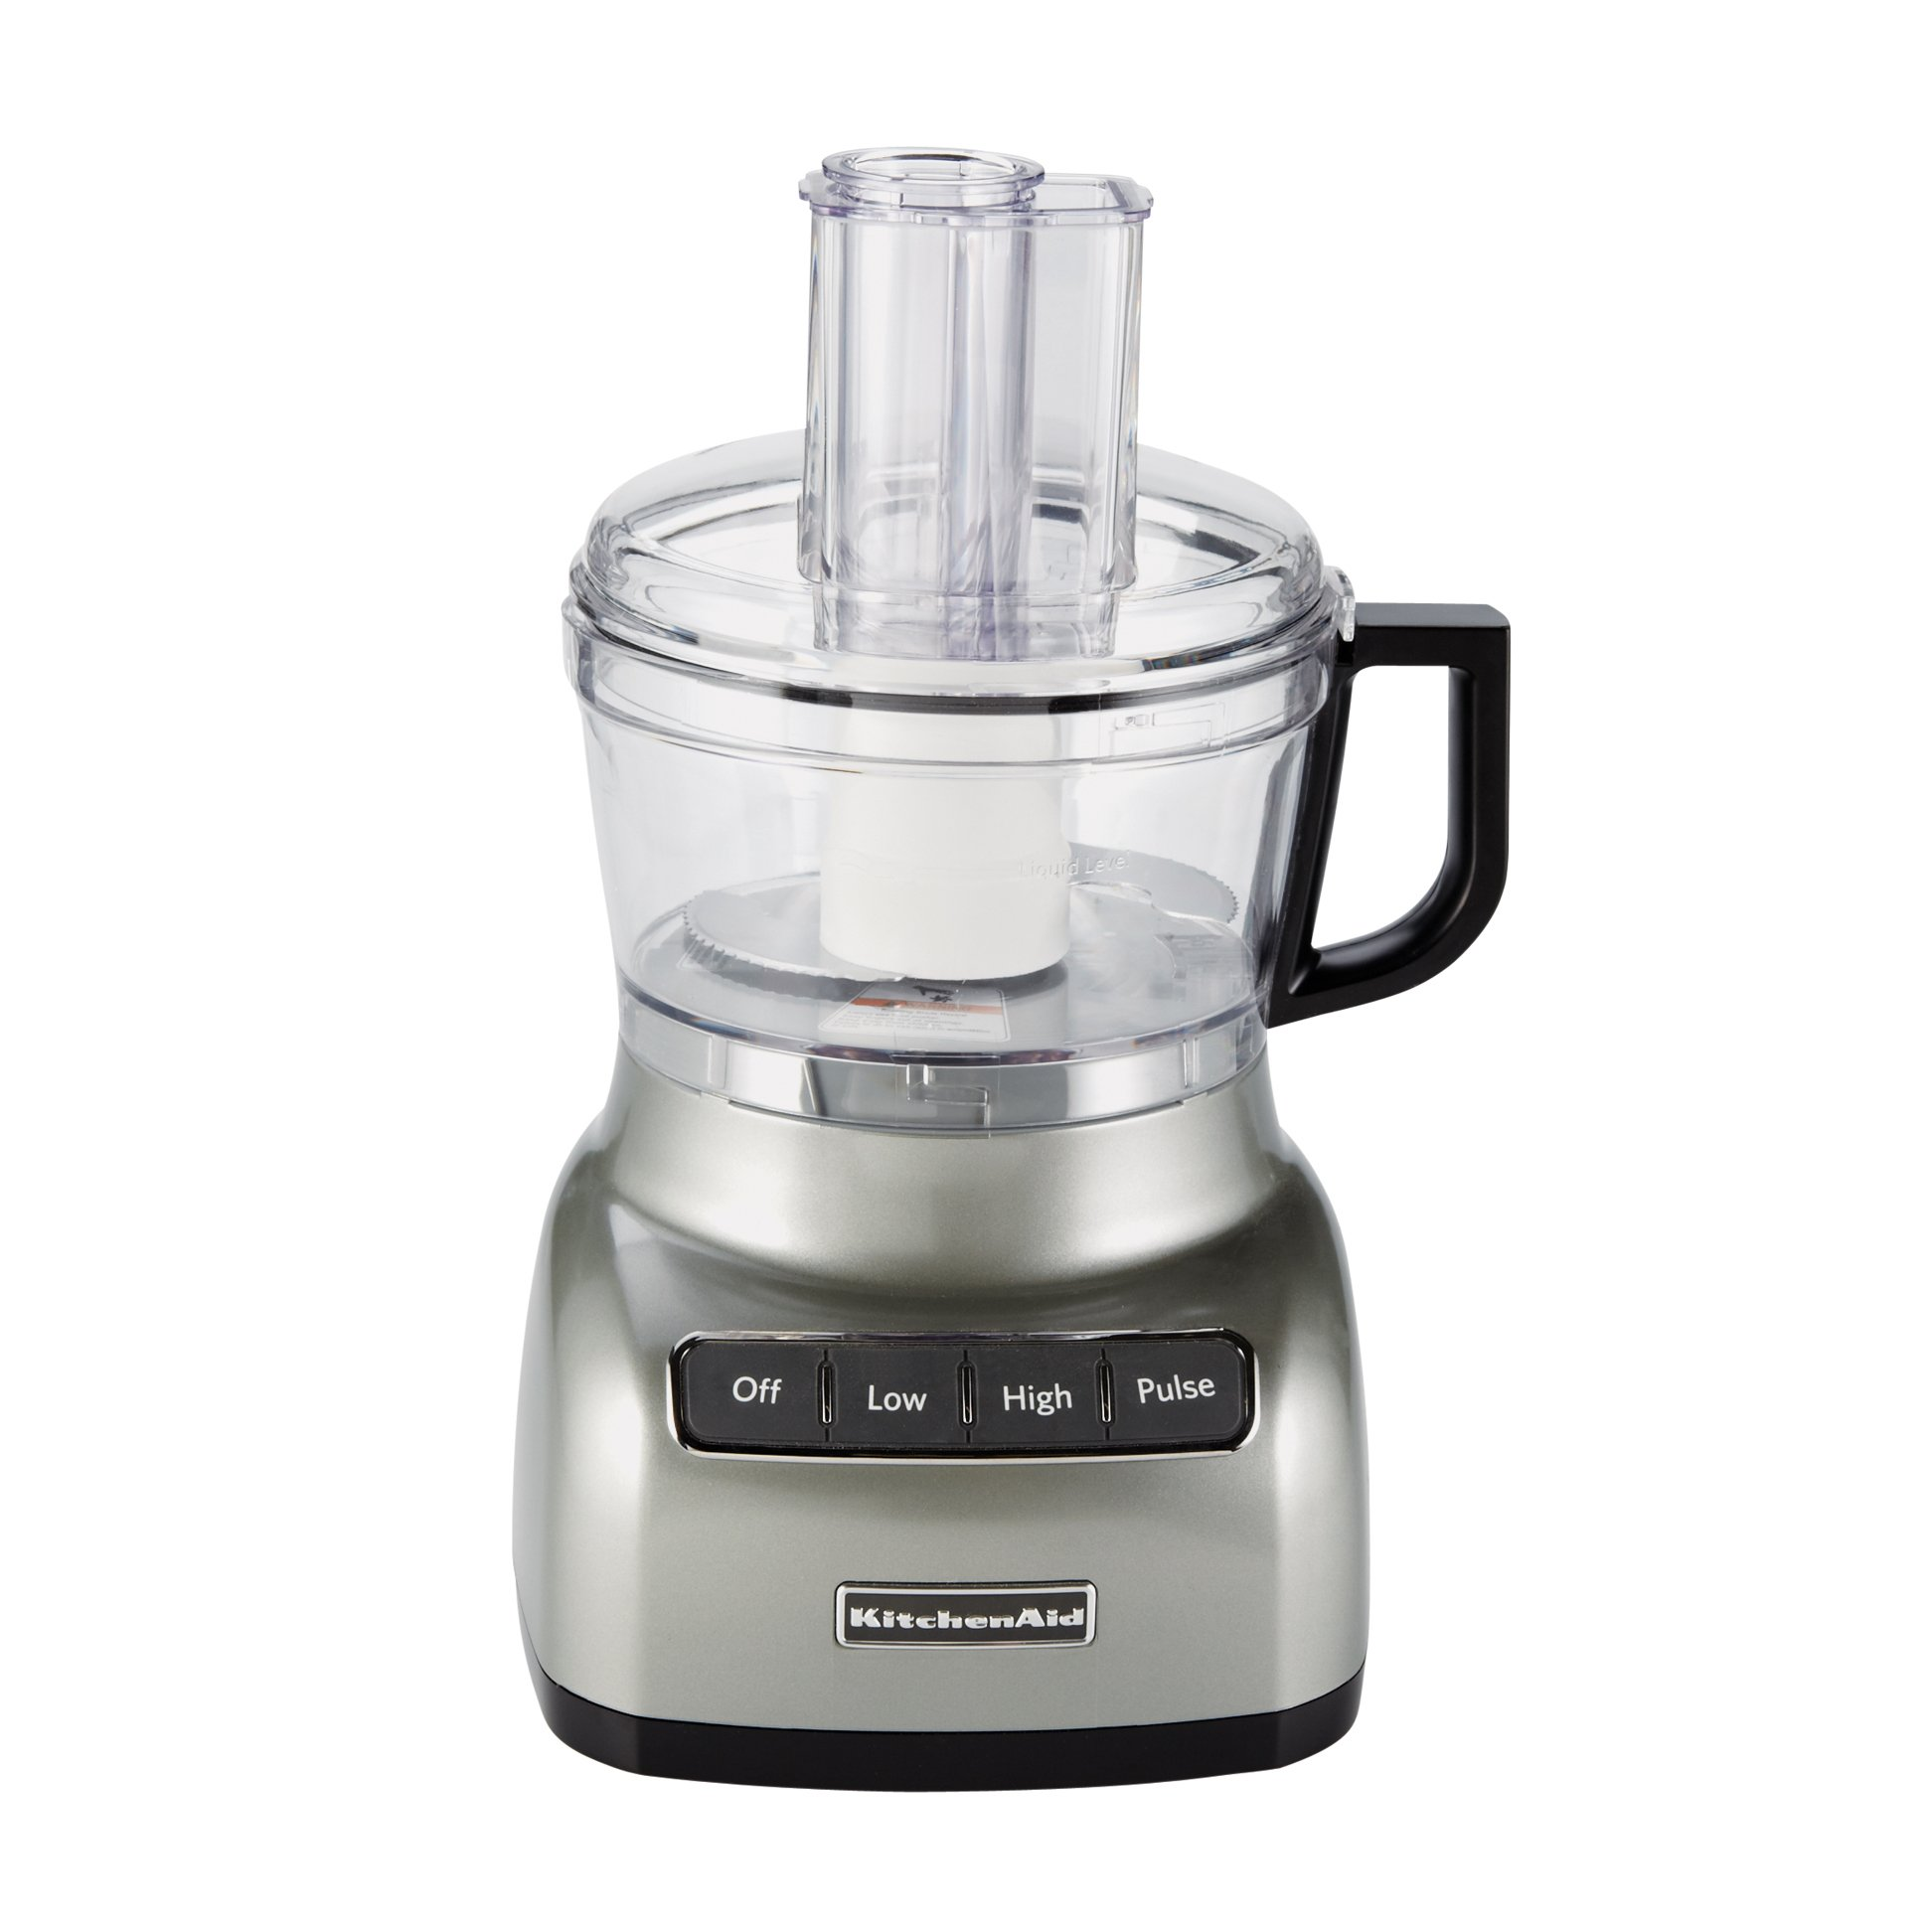 KitchenAid Silver 7 Cup Food Processor. Roll Over Image To Zoom In